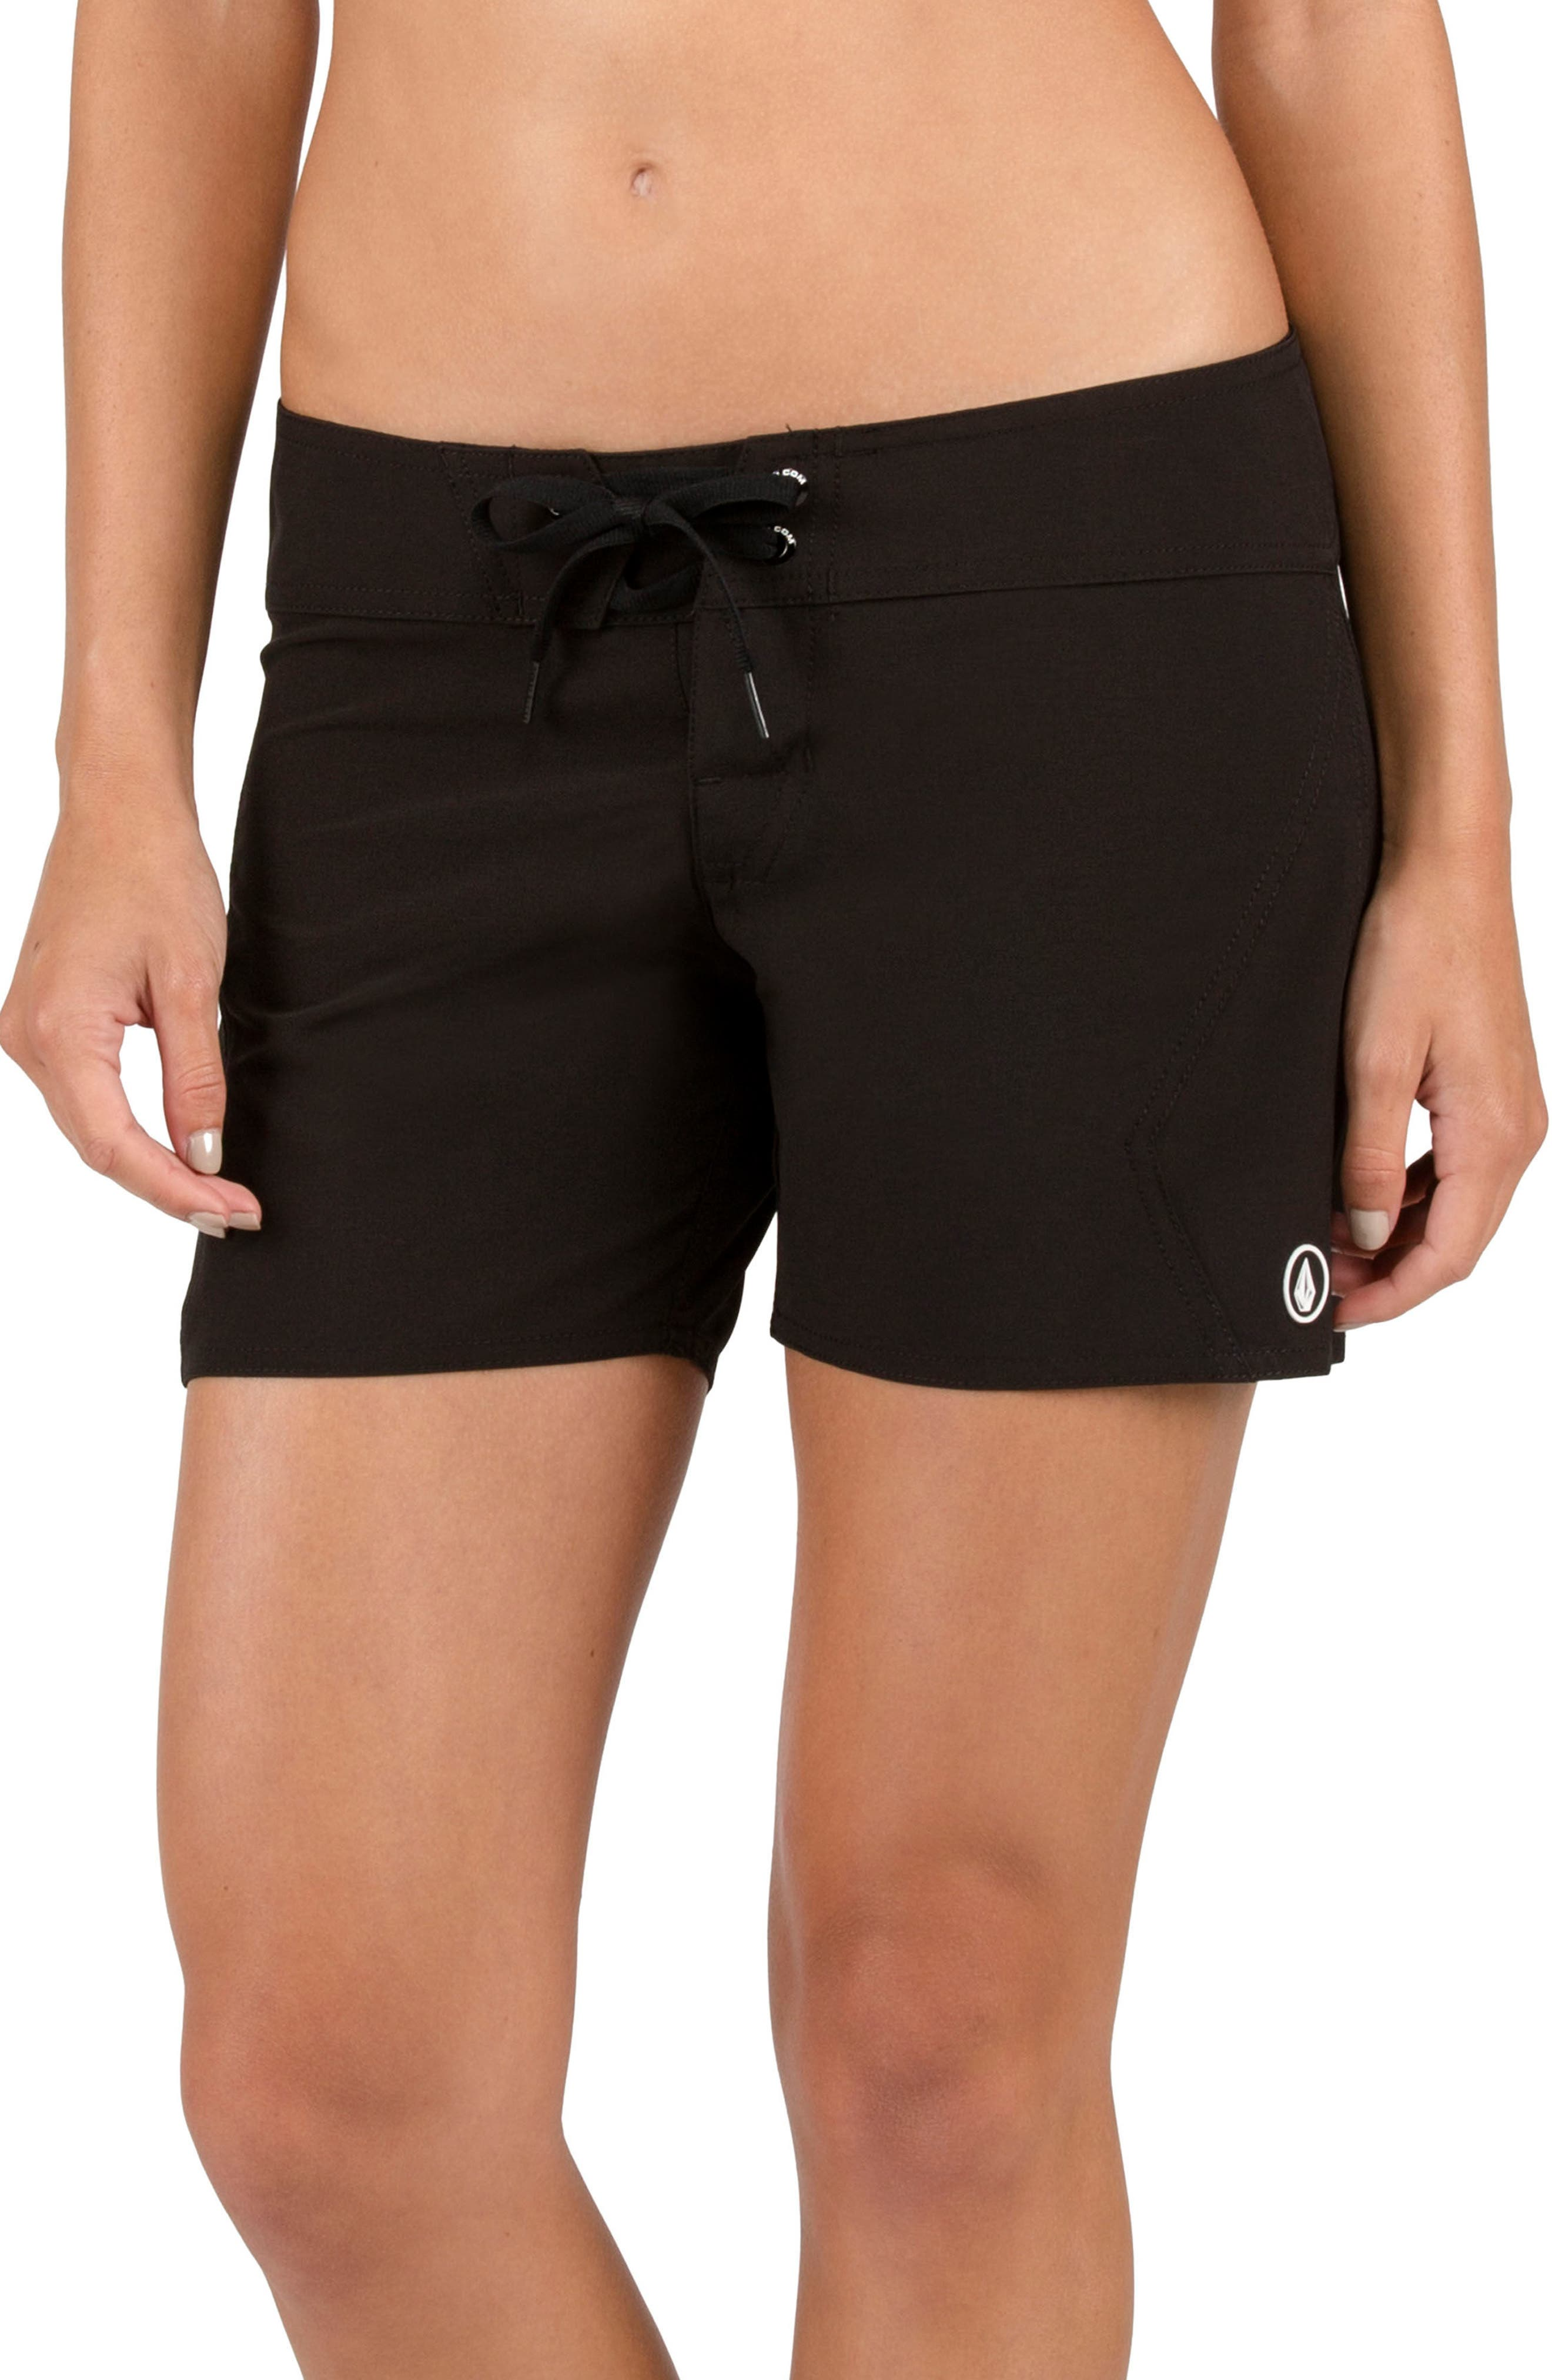 Alternate Image 1 Selected - Volcom Simply Solid 5-Inch Board Shorts